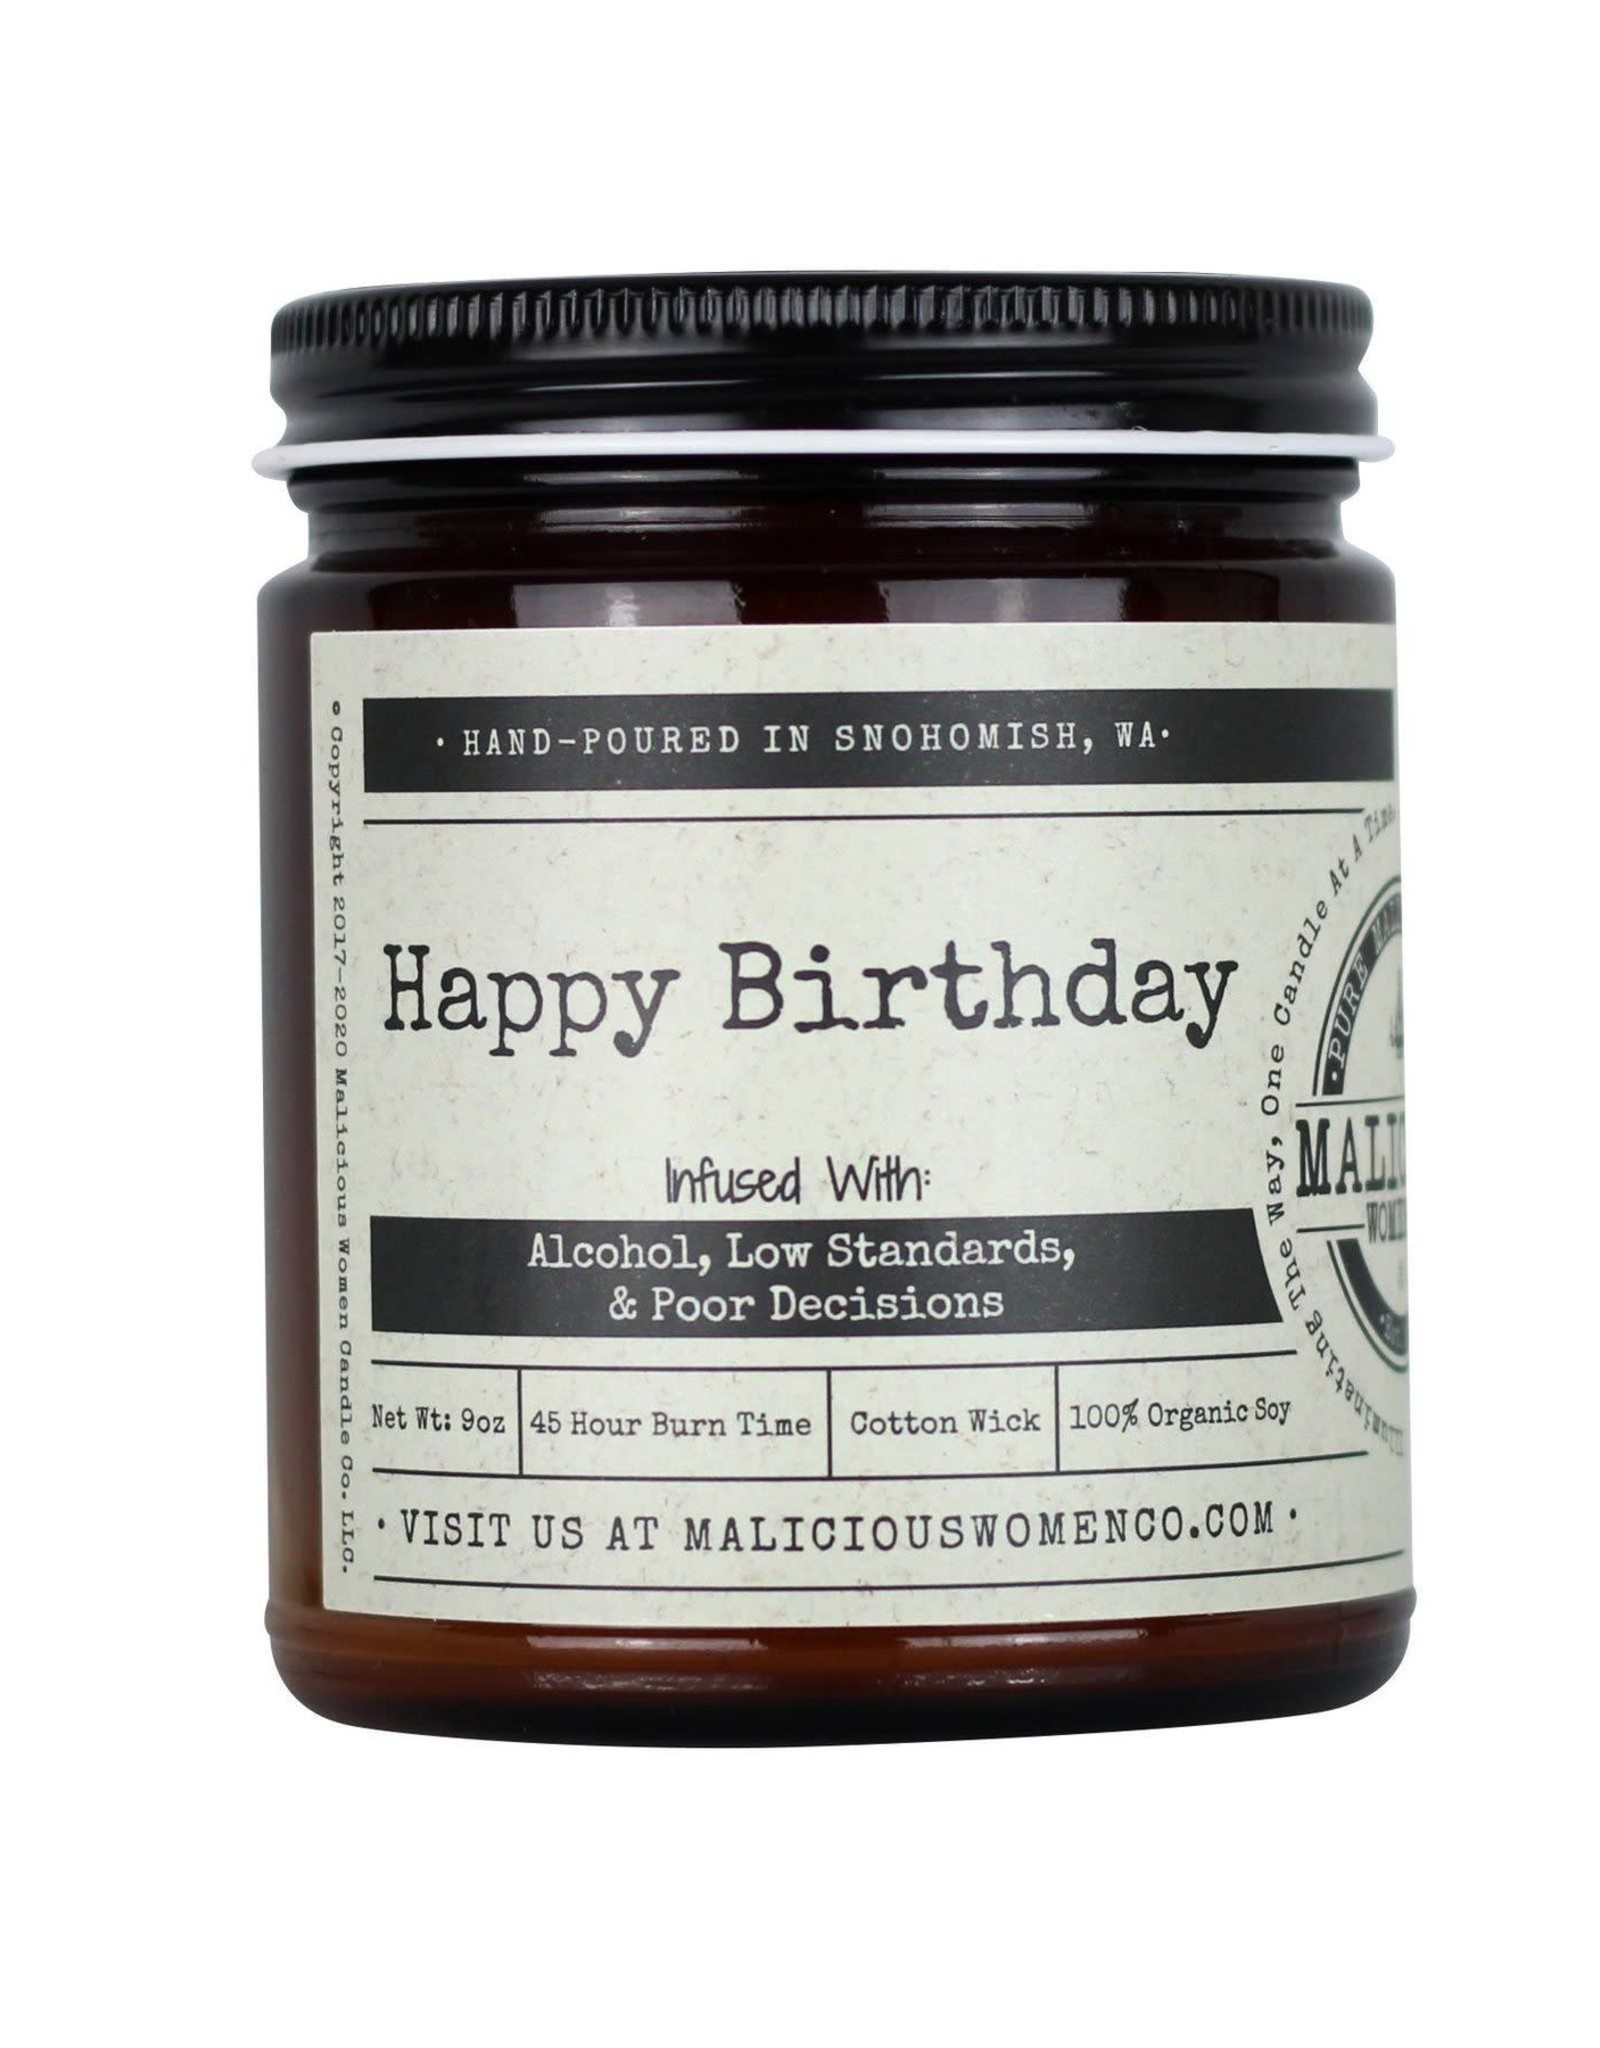 Malicious Women Candle Co. Happy Birthday Candle